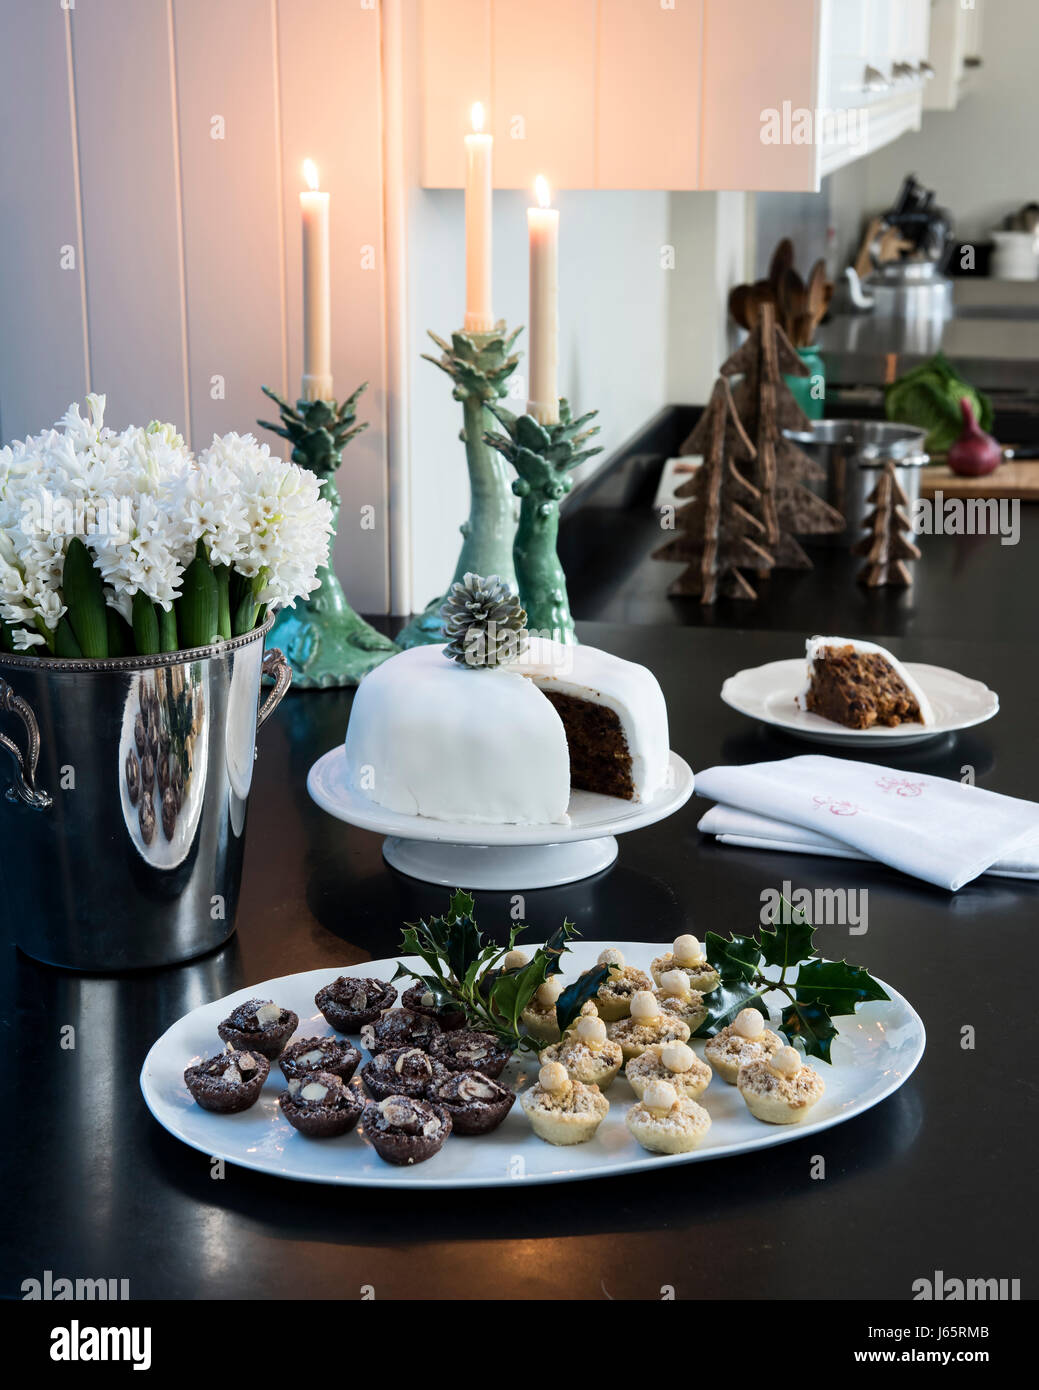 Small tarts and Christmas cake on a black stone worktop in elegant candle-lit kitchen - Stock Image